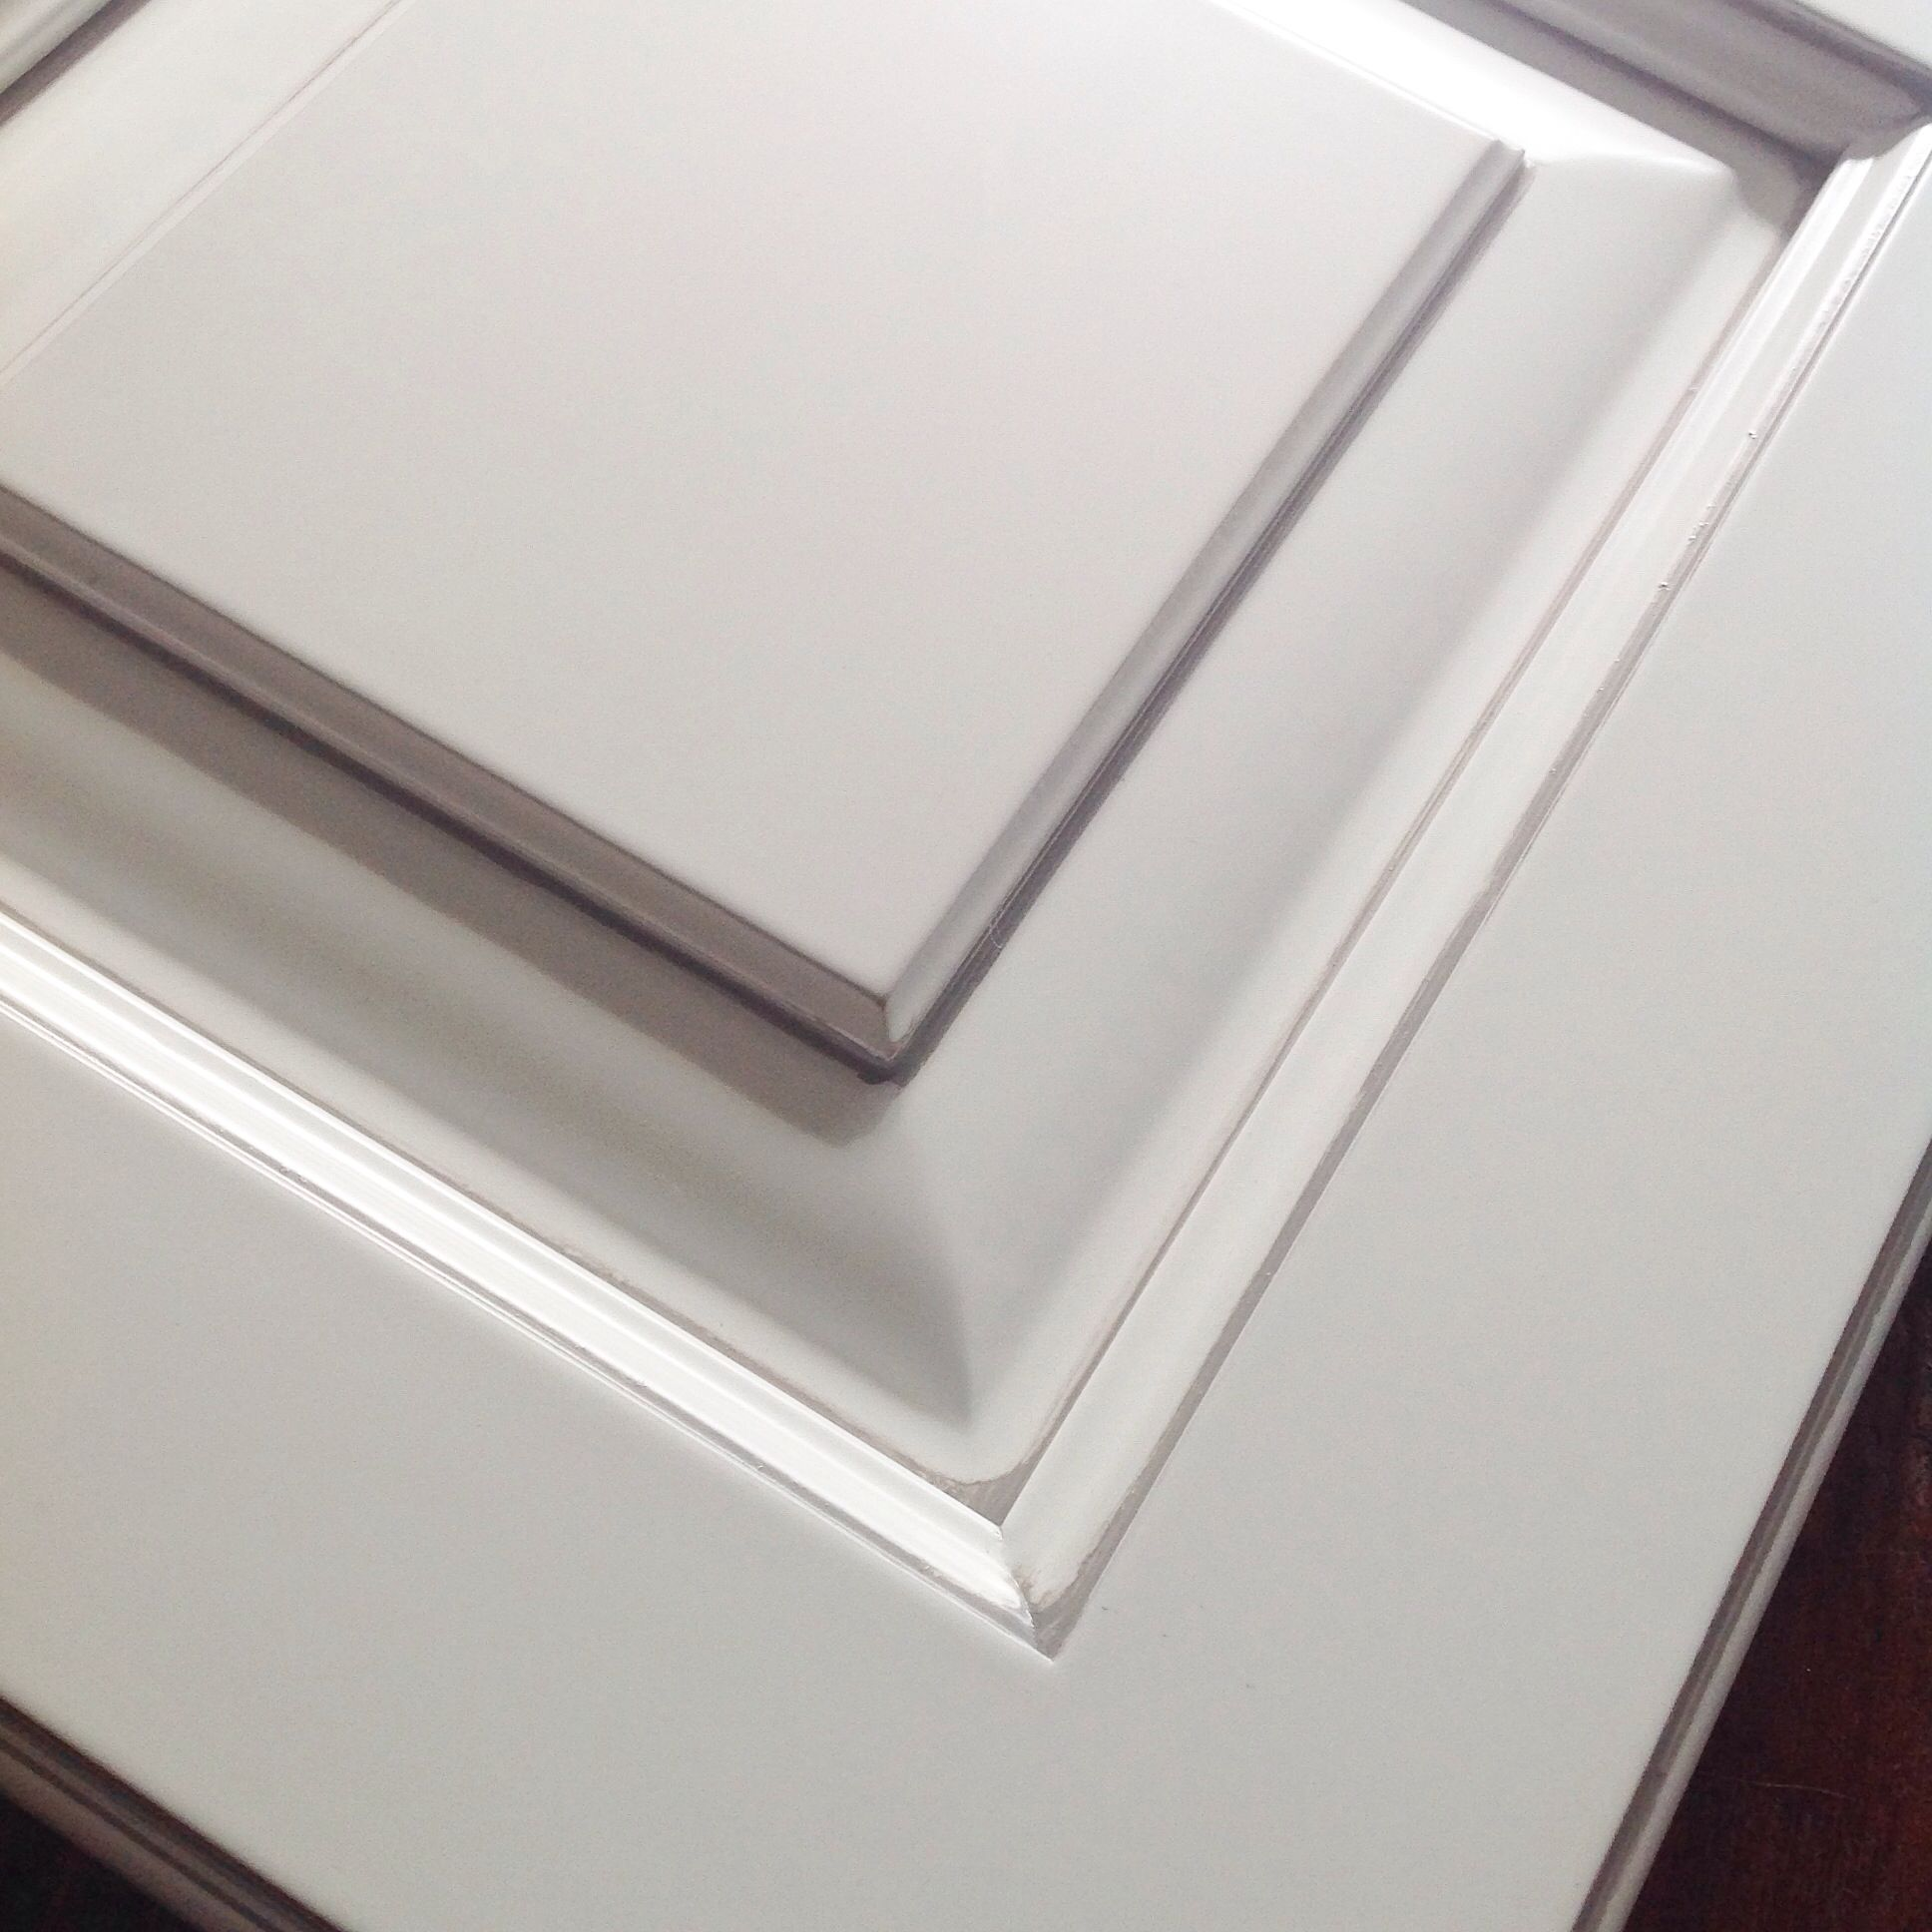 White Cabinets With Brown Glaze: Painted White Cabinet With Pewter Hand Glazing